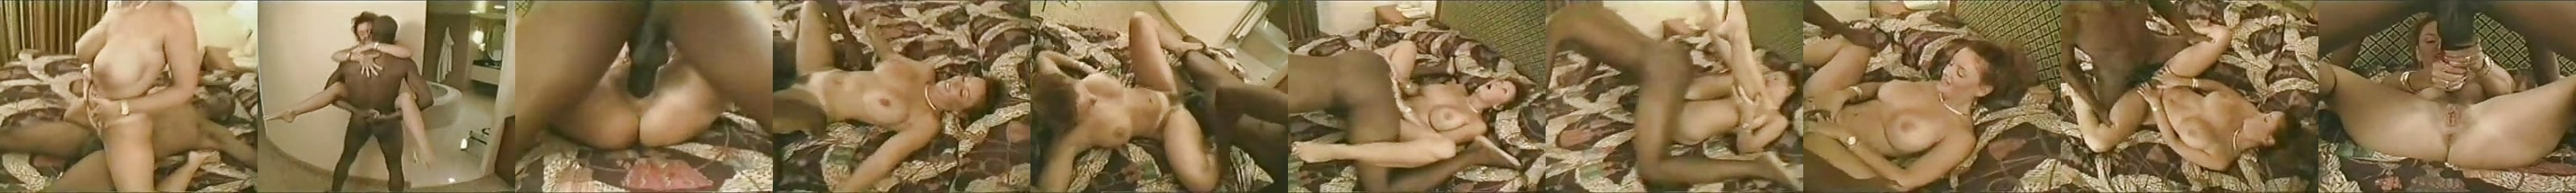 ramba nude t images